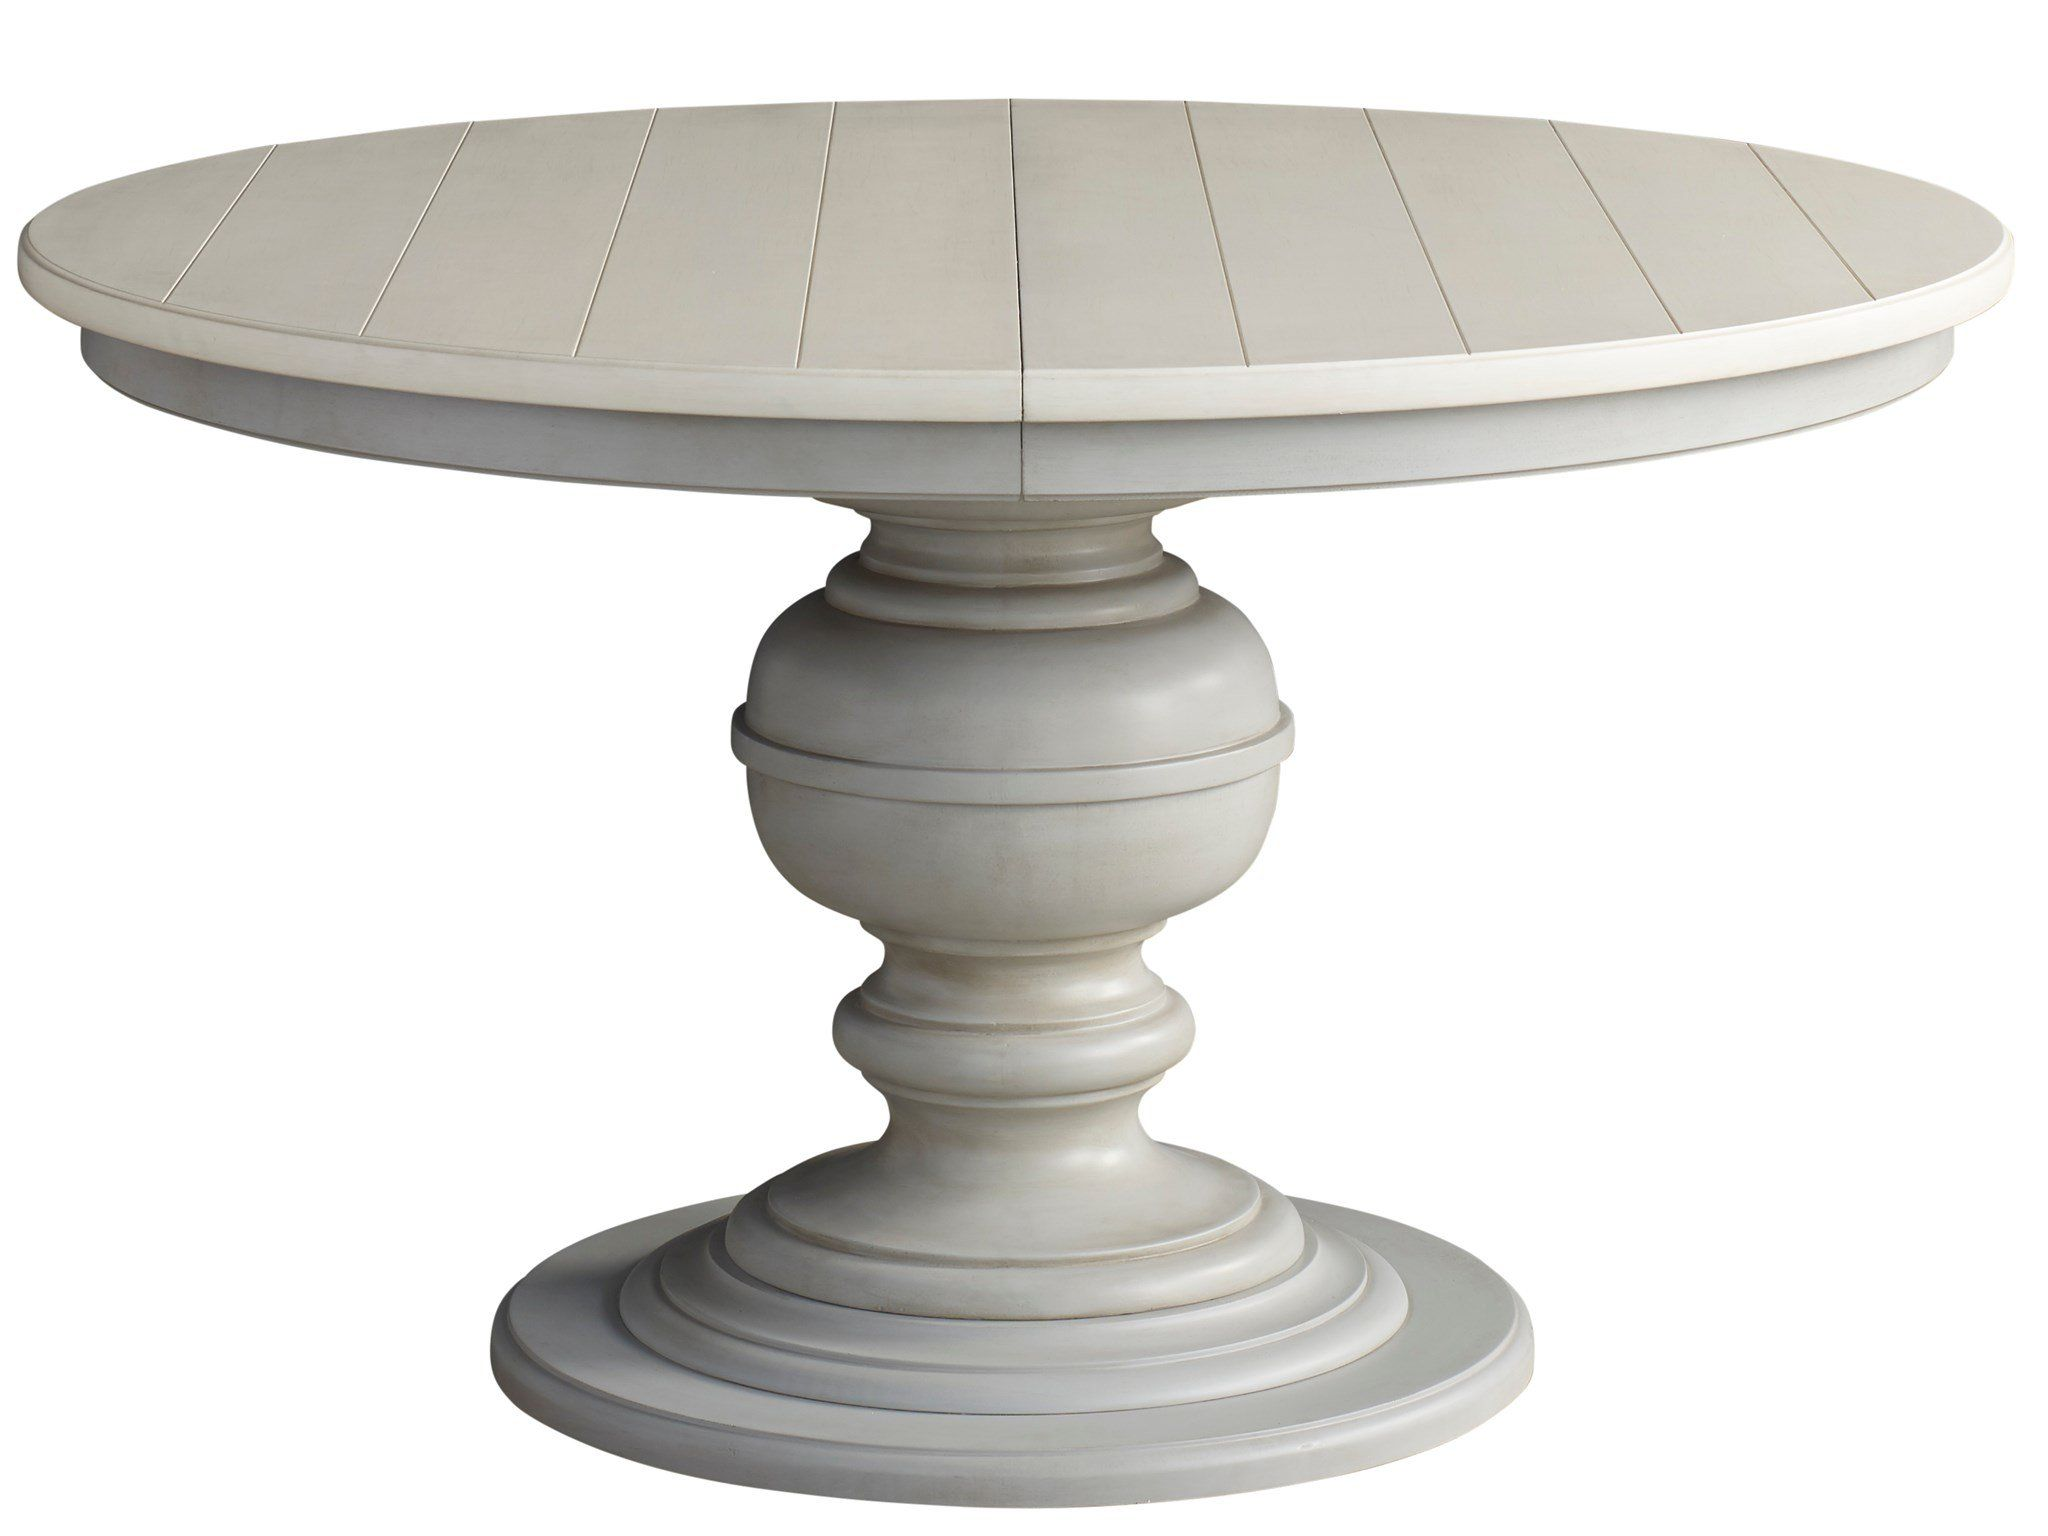 Summer Hill French Gray Round Dining Table Universal Furniture In 2021 Round Dining Table Round Dining Universal Furniture